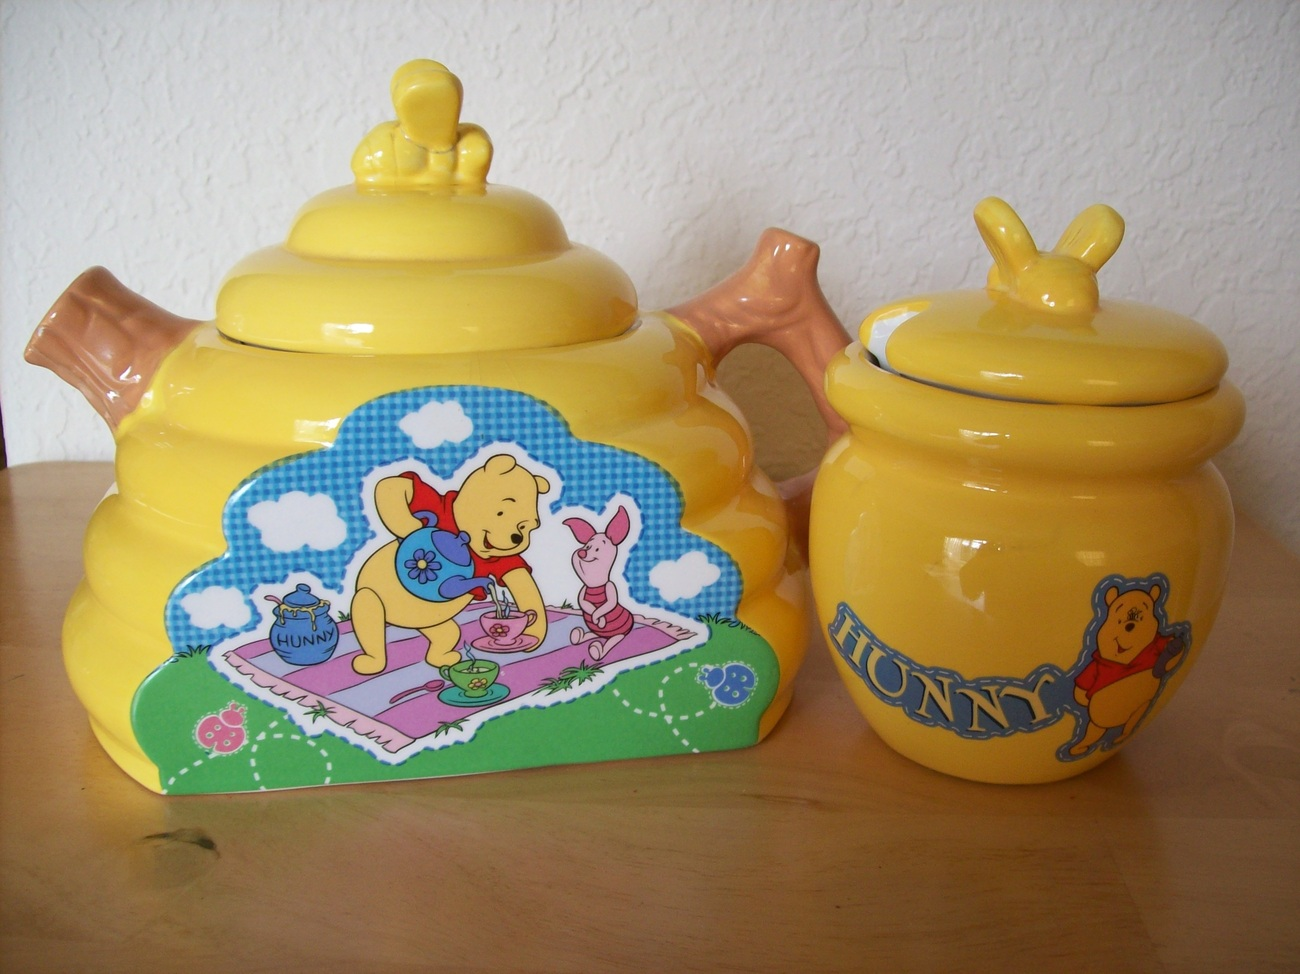 Disney Winnie the Pooh and Piglet Teapot and Hunny Jar